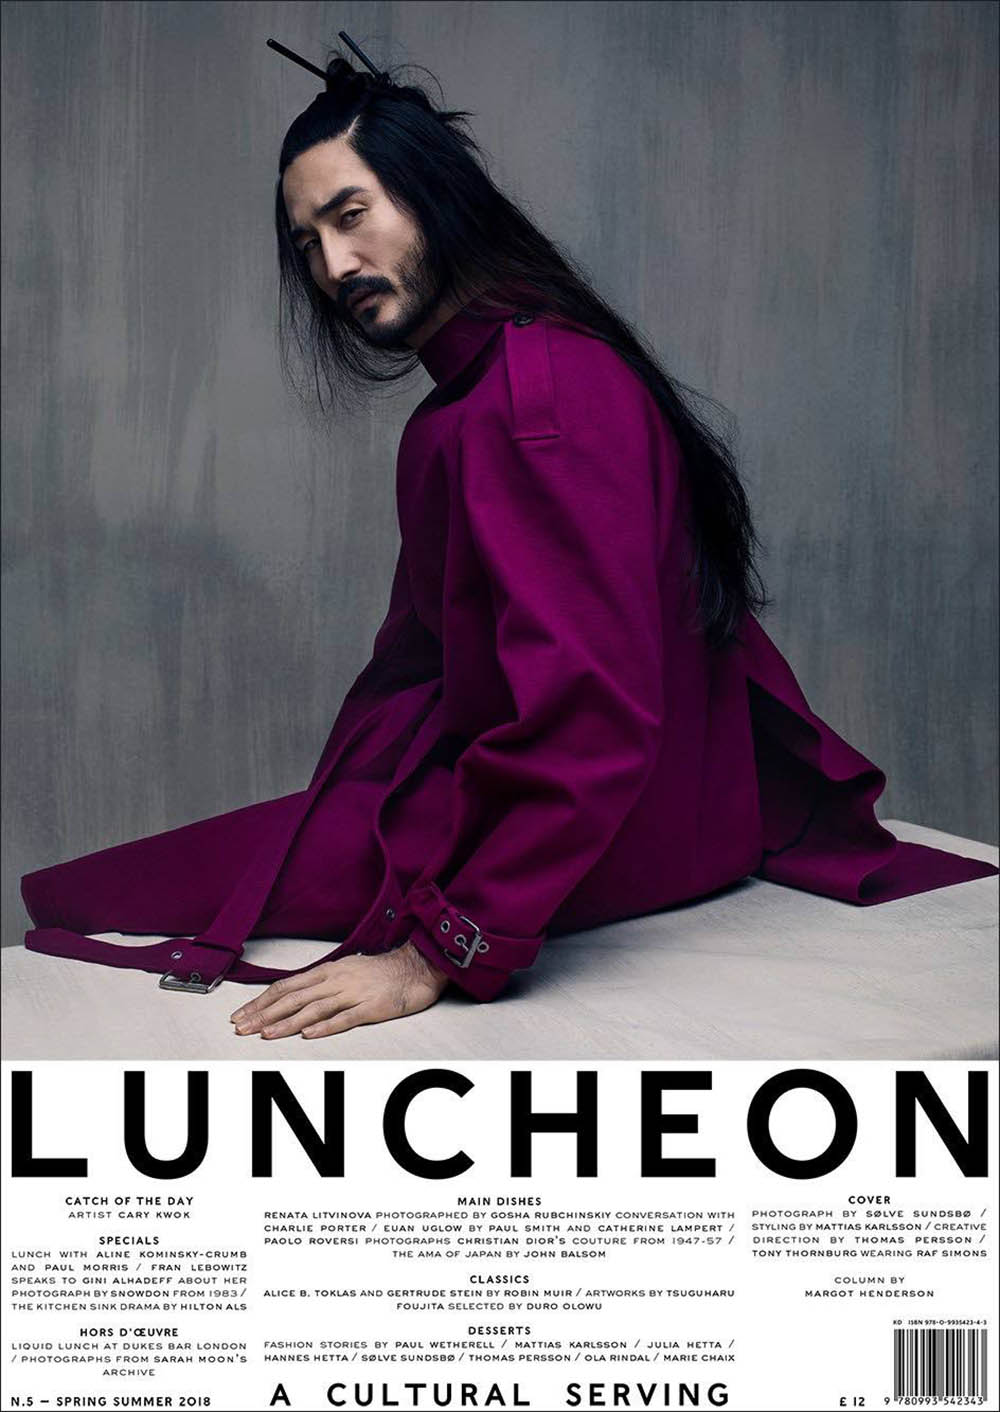 Tony Thornburg covers Luncheon Magazine Spring Summer 2018 by Sølve Sundsbø